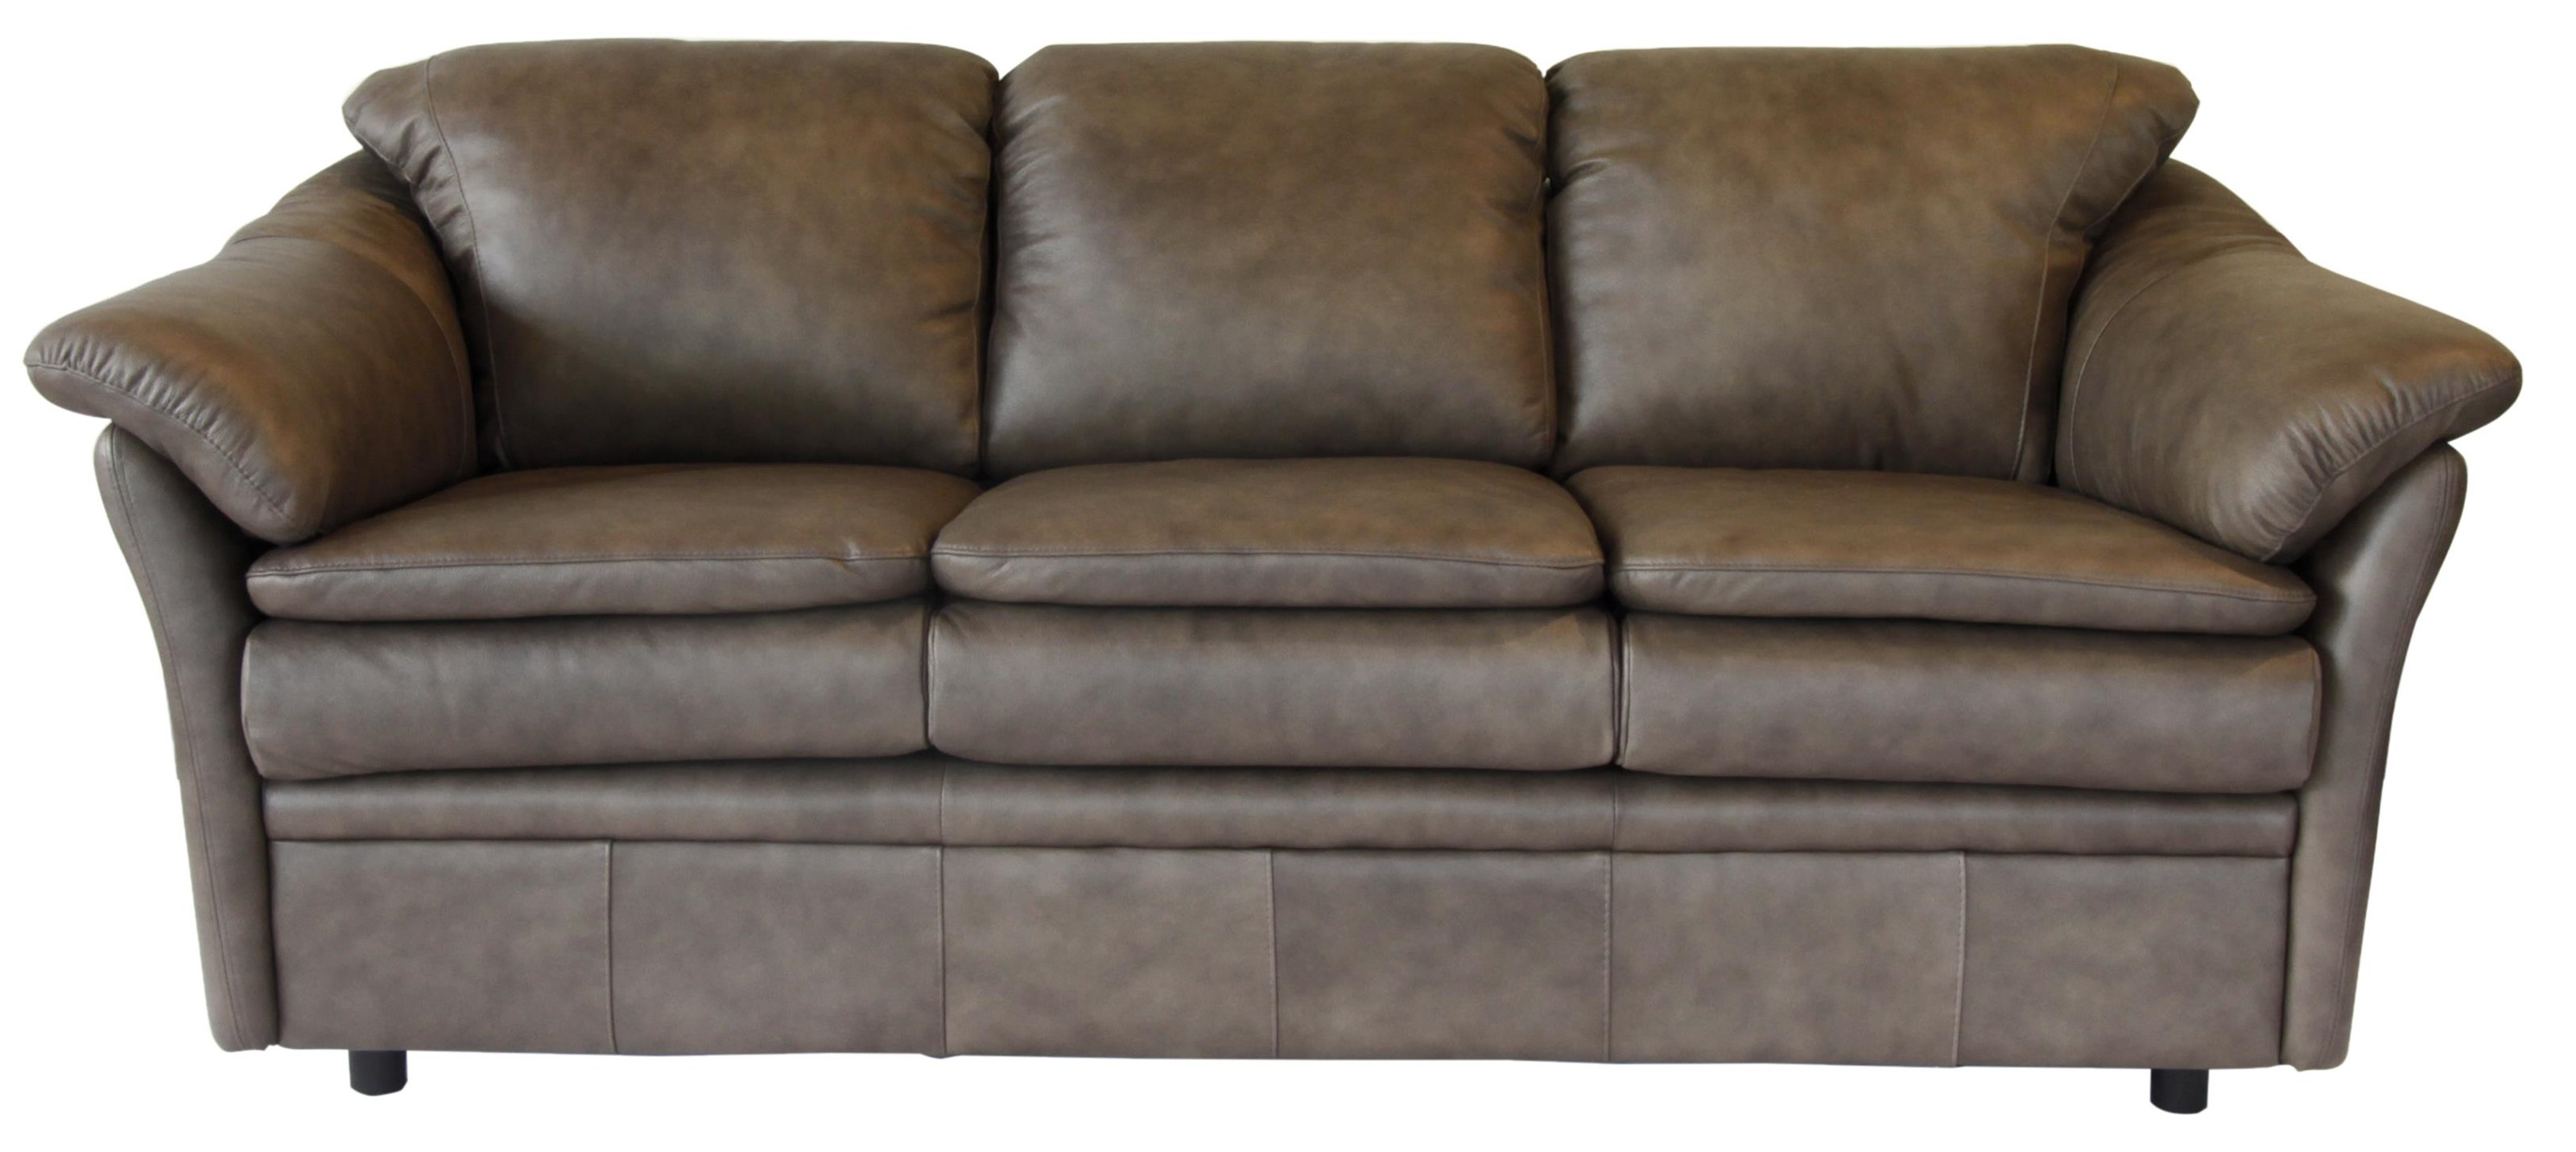 Uptown Sofa by Omnia Leather at HomeWorld Furniture